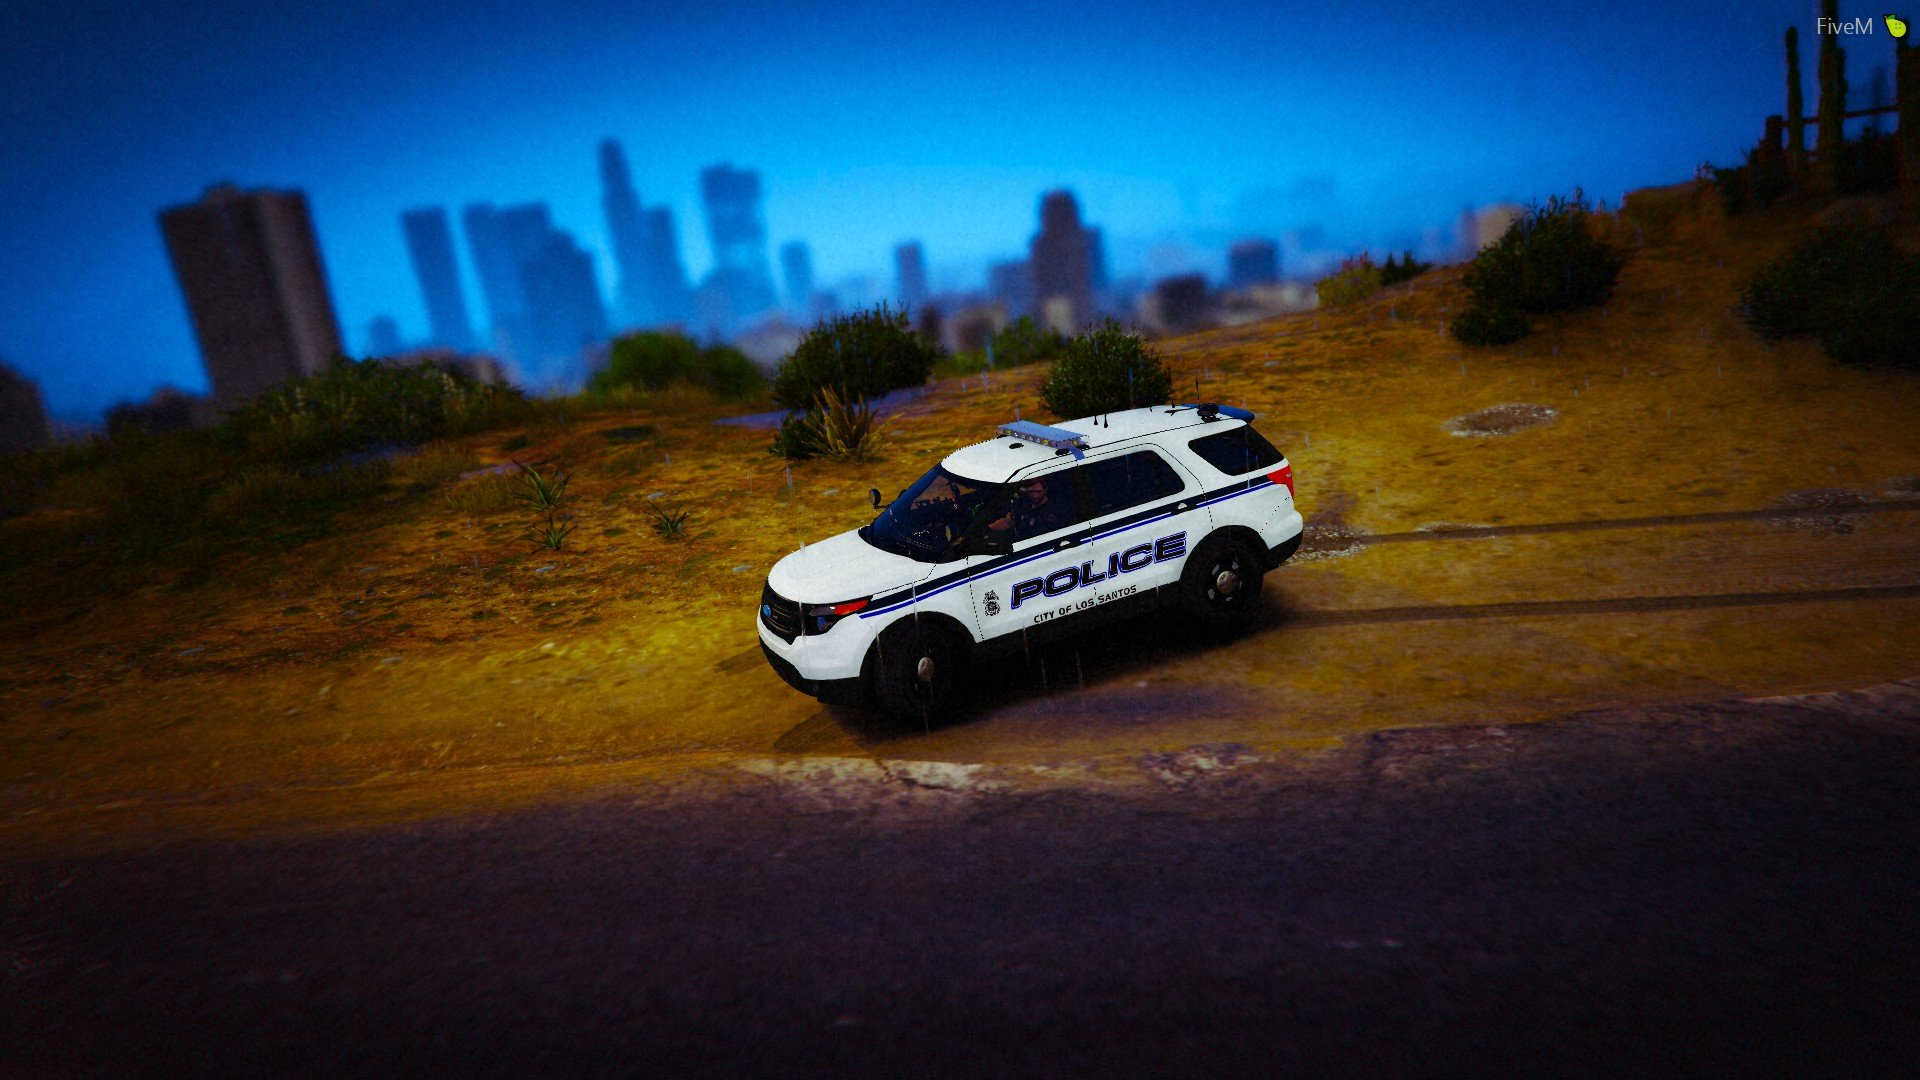 Just a picture of LSPD's sexy 2013 explorer.